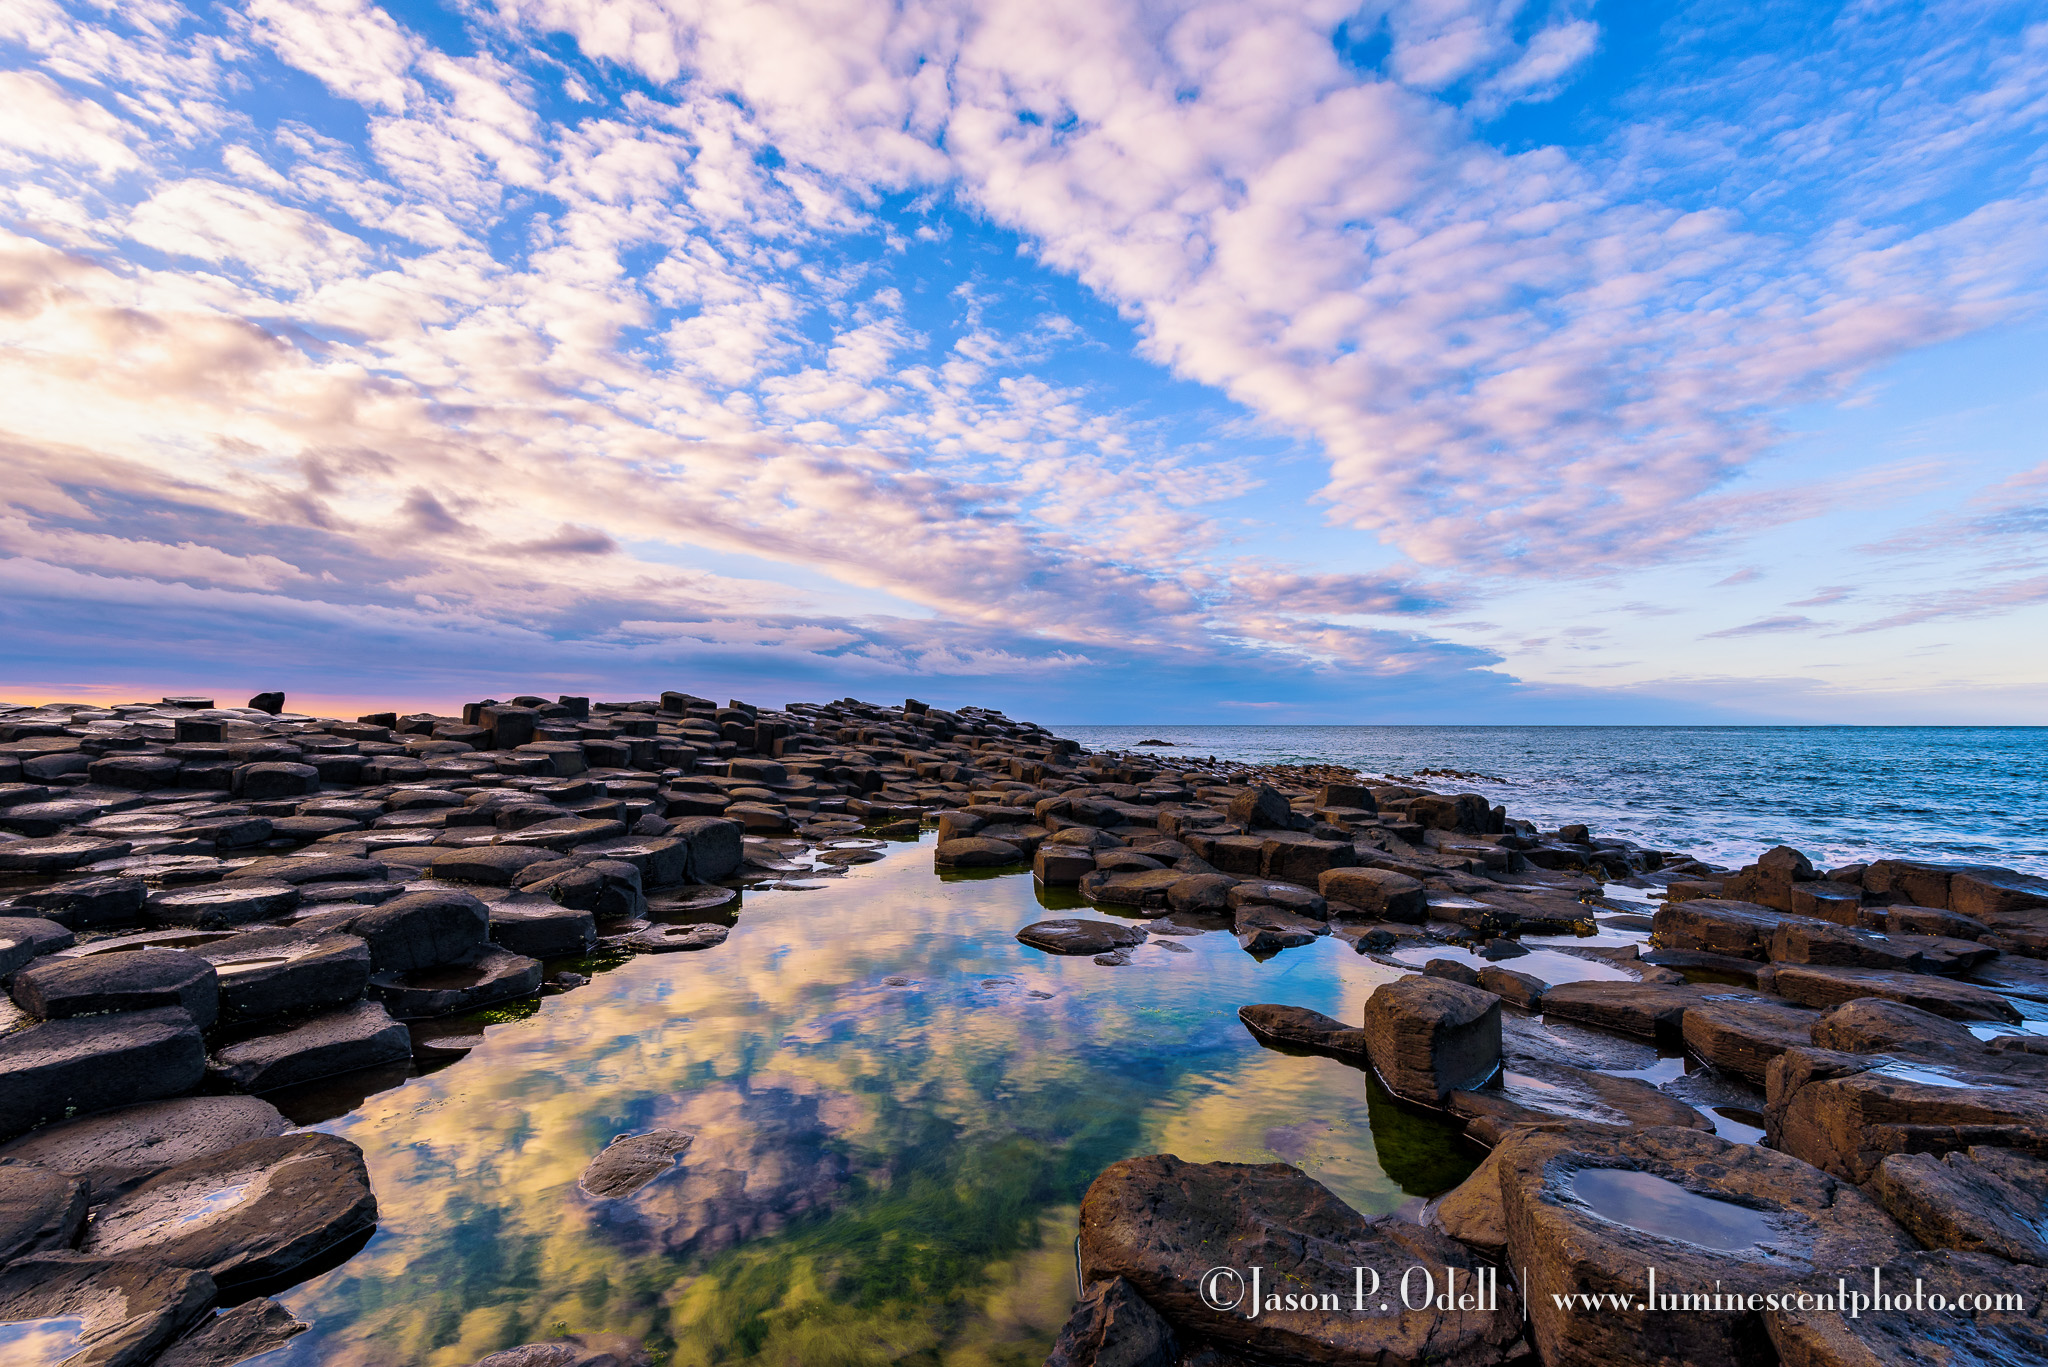 Sunset at the Giant's Causeway, Northern Ireland.